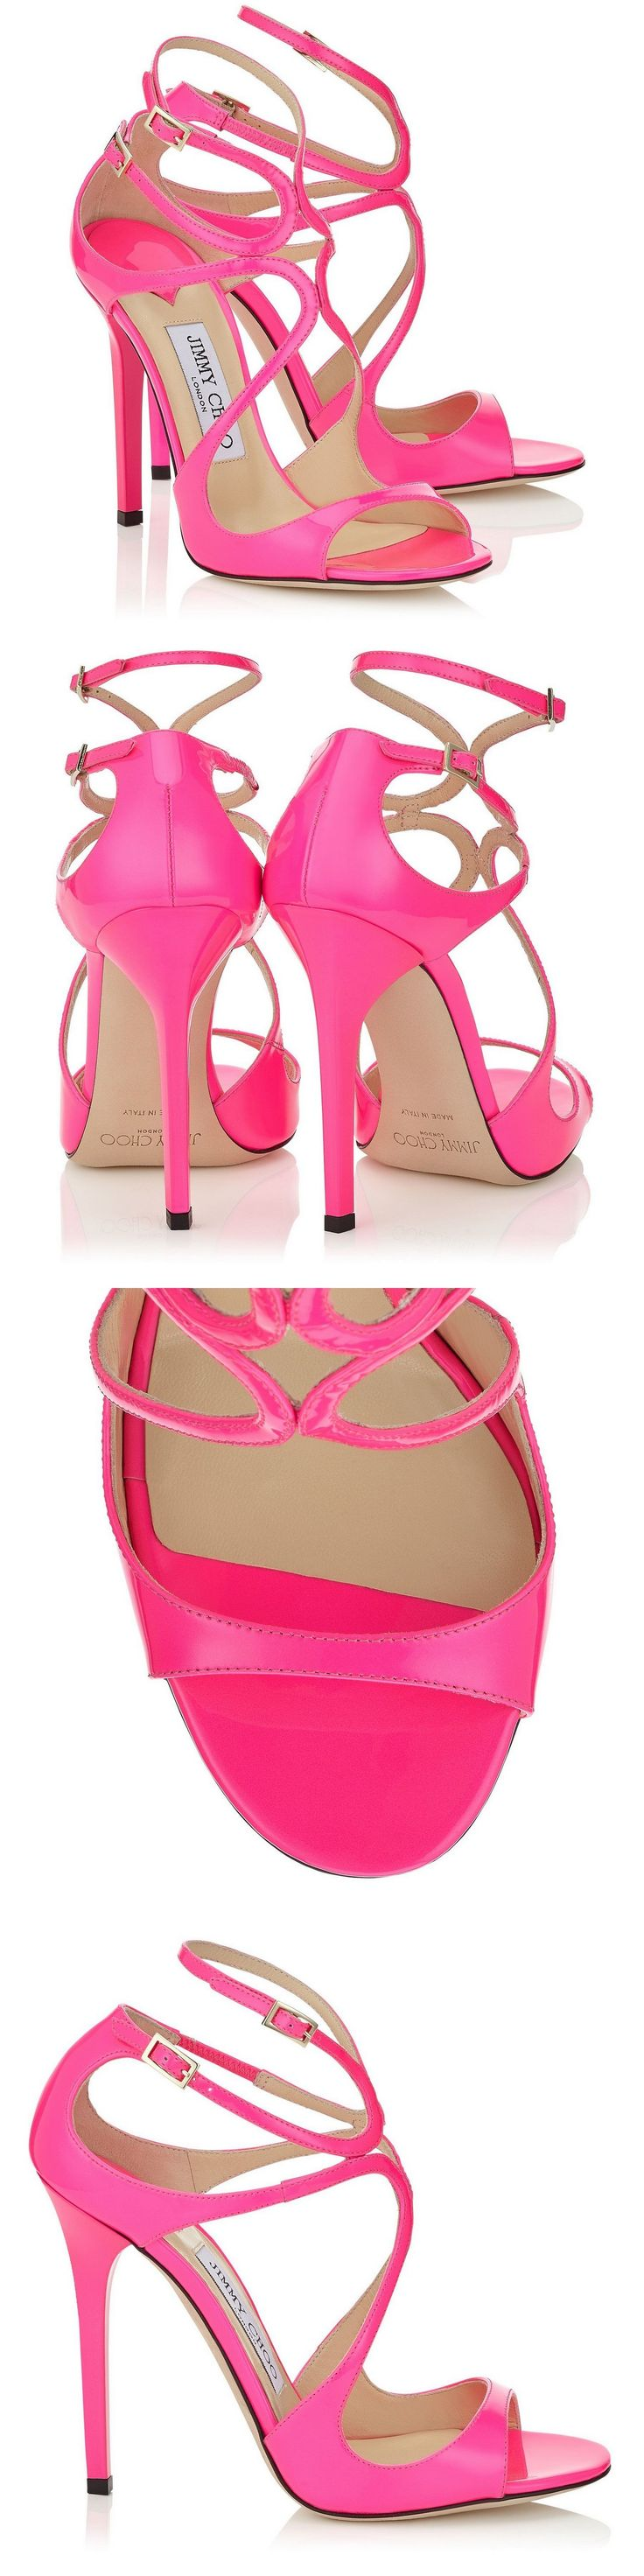 Jimmy Choo Raspberry Neon Patent Strappy Sandals   Lance   Pre Fall 15   #JimmyChoo #Shoes